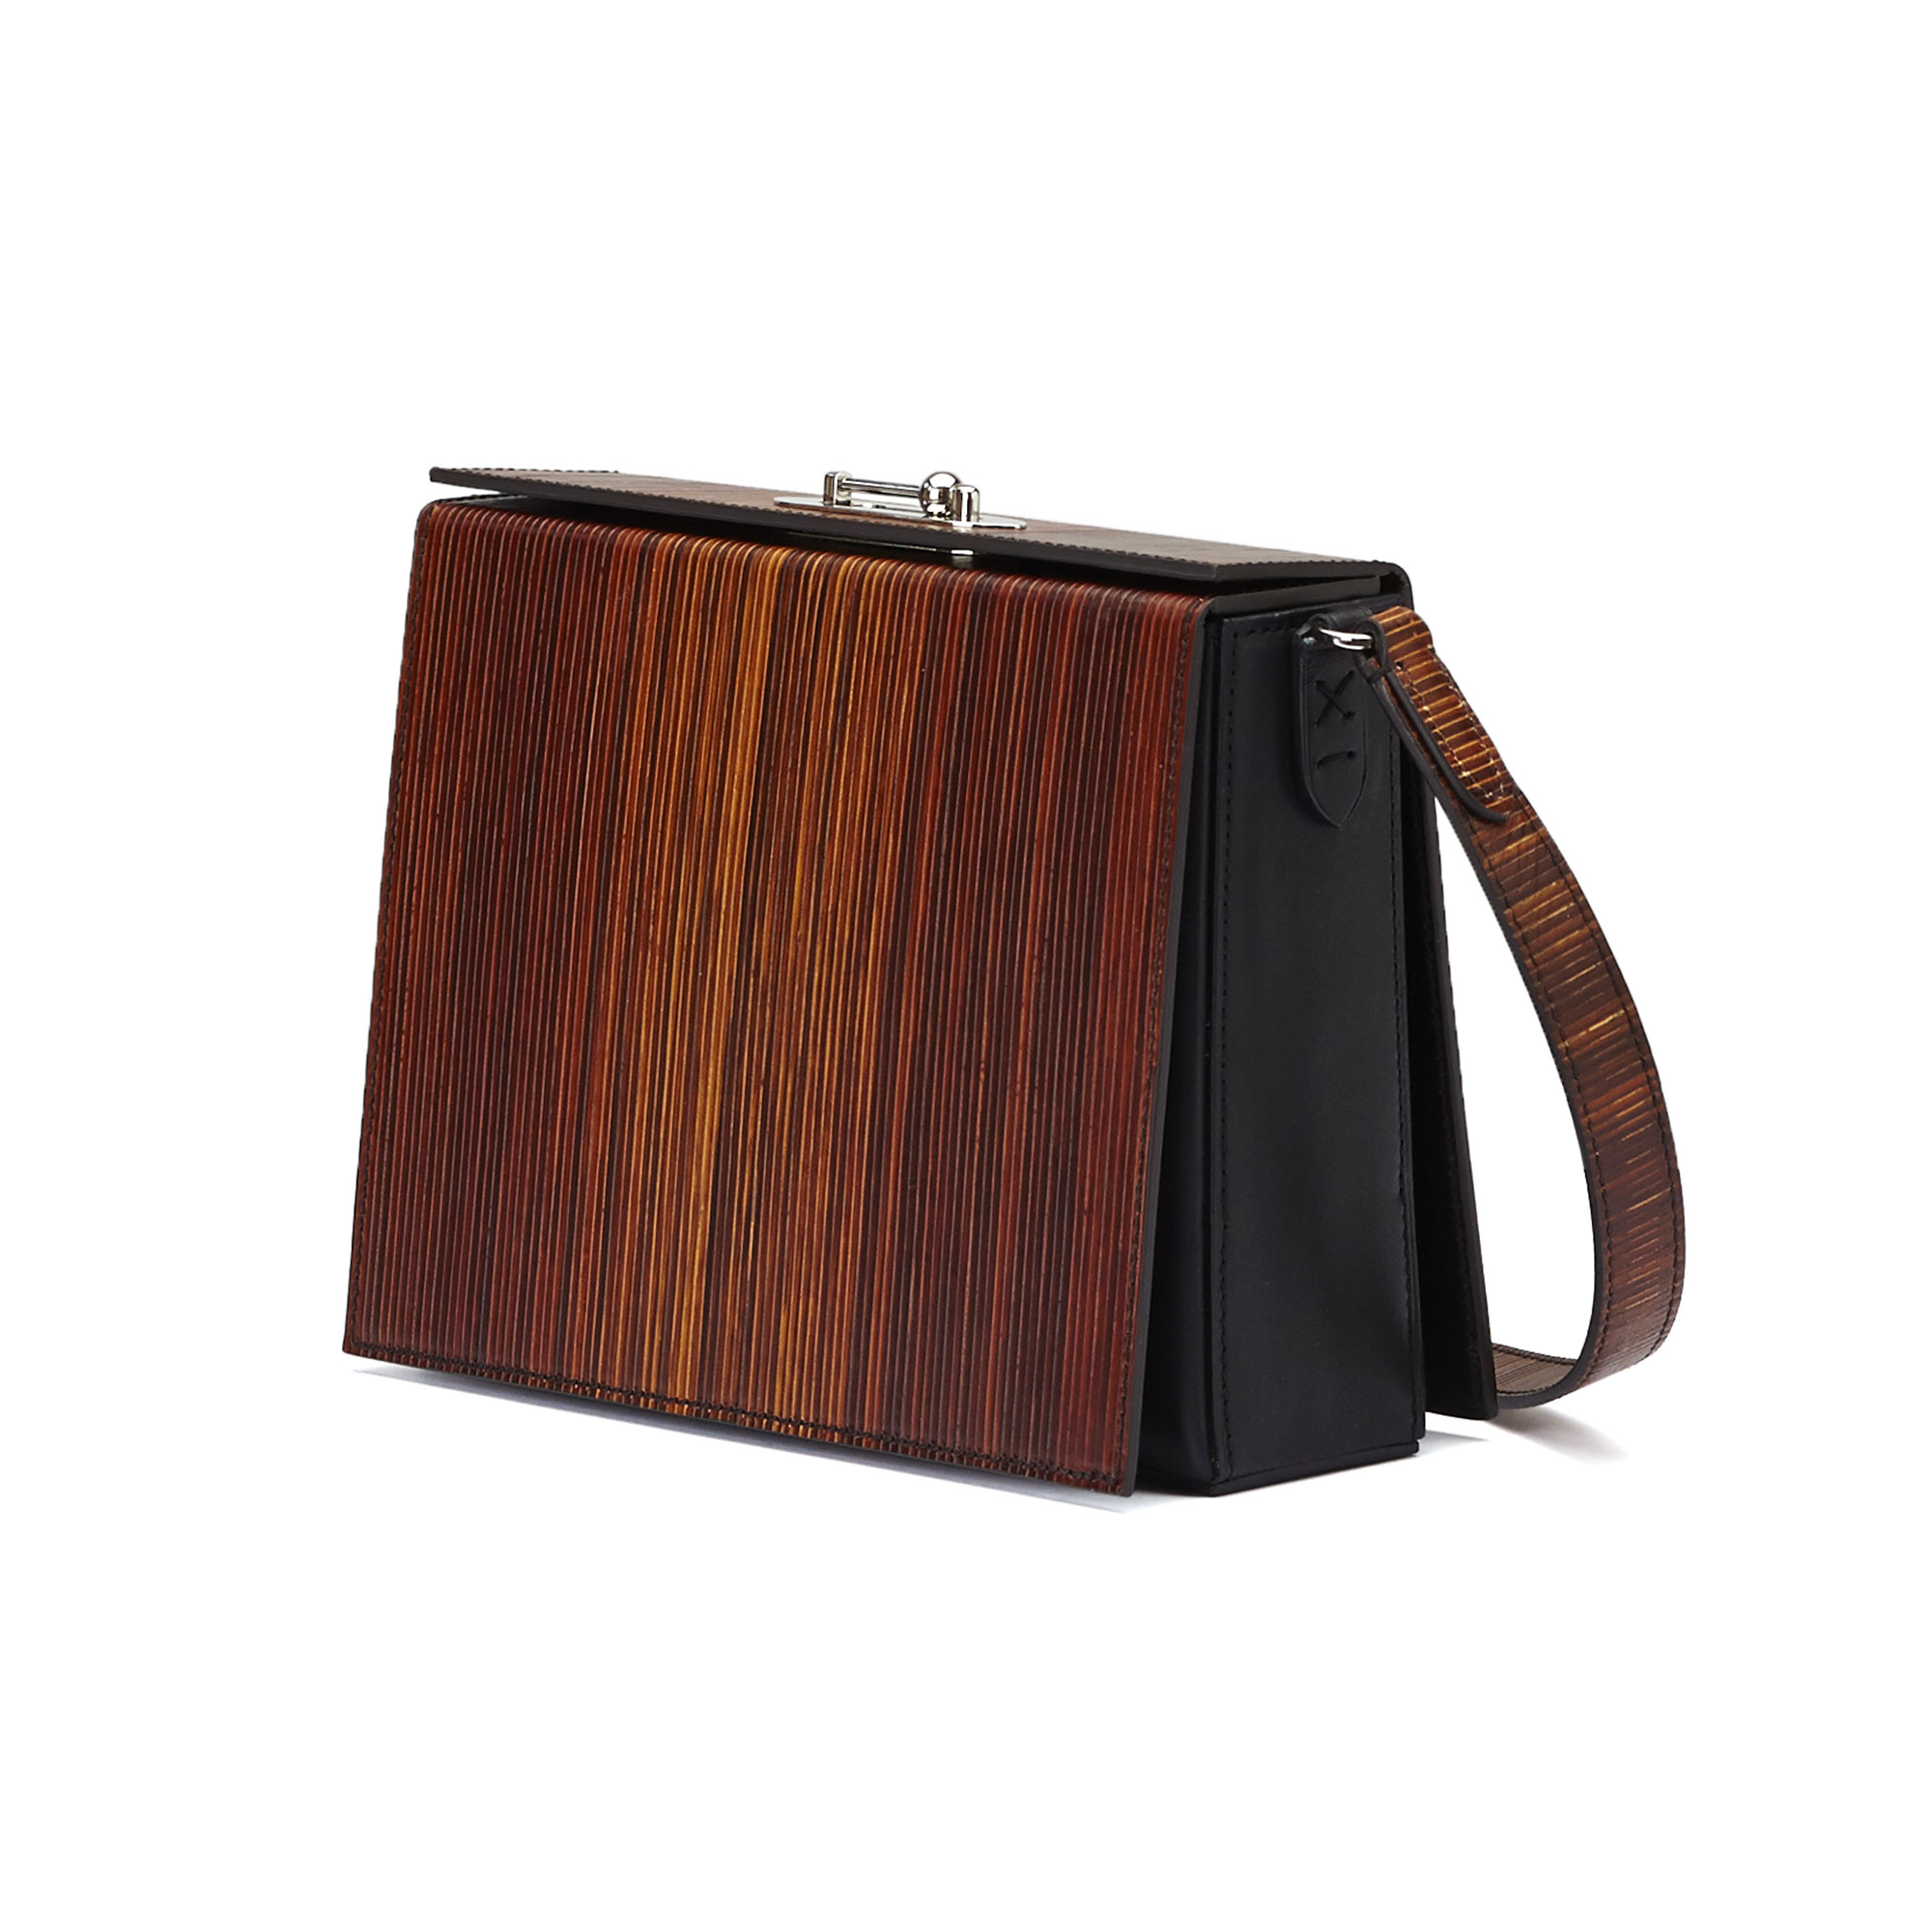 The black effect wood leather french calf Gemma Crossbody bag by Bertoni 1949 02